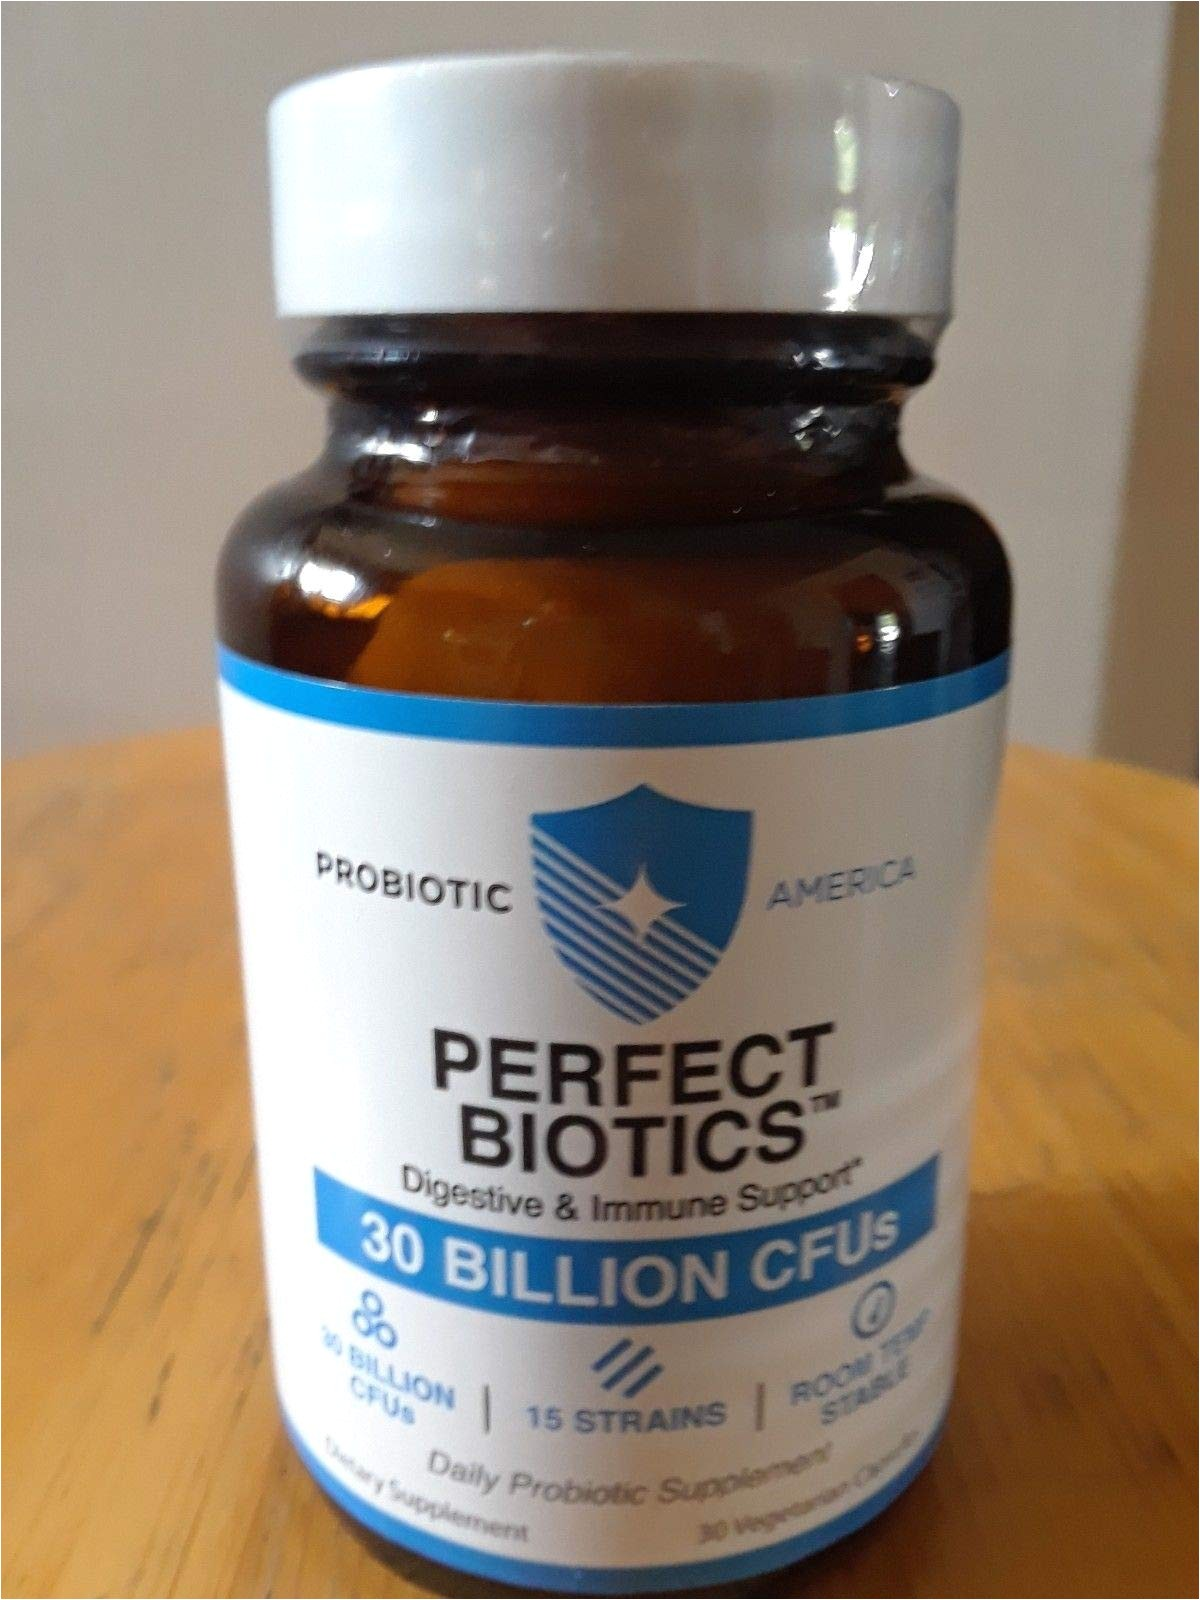 Probiotic America Perfect Biotics Reviews Amazon Com Probiotic America Perfect Biotics Daily Probiotic